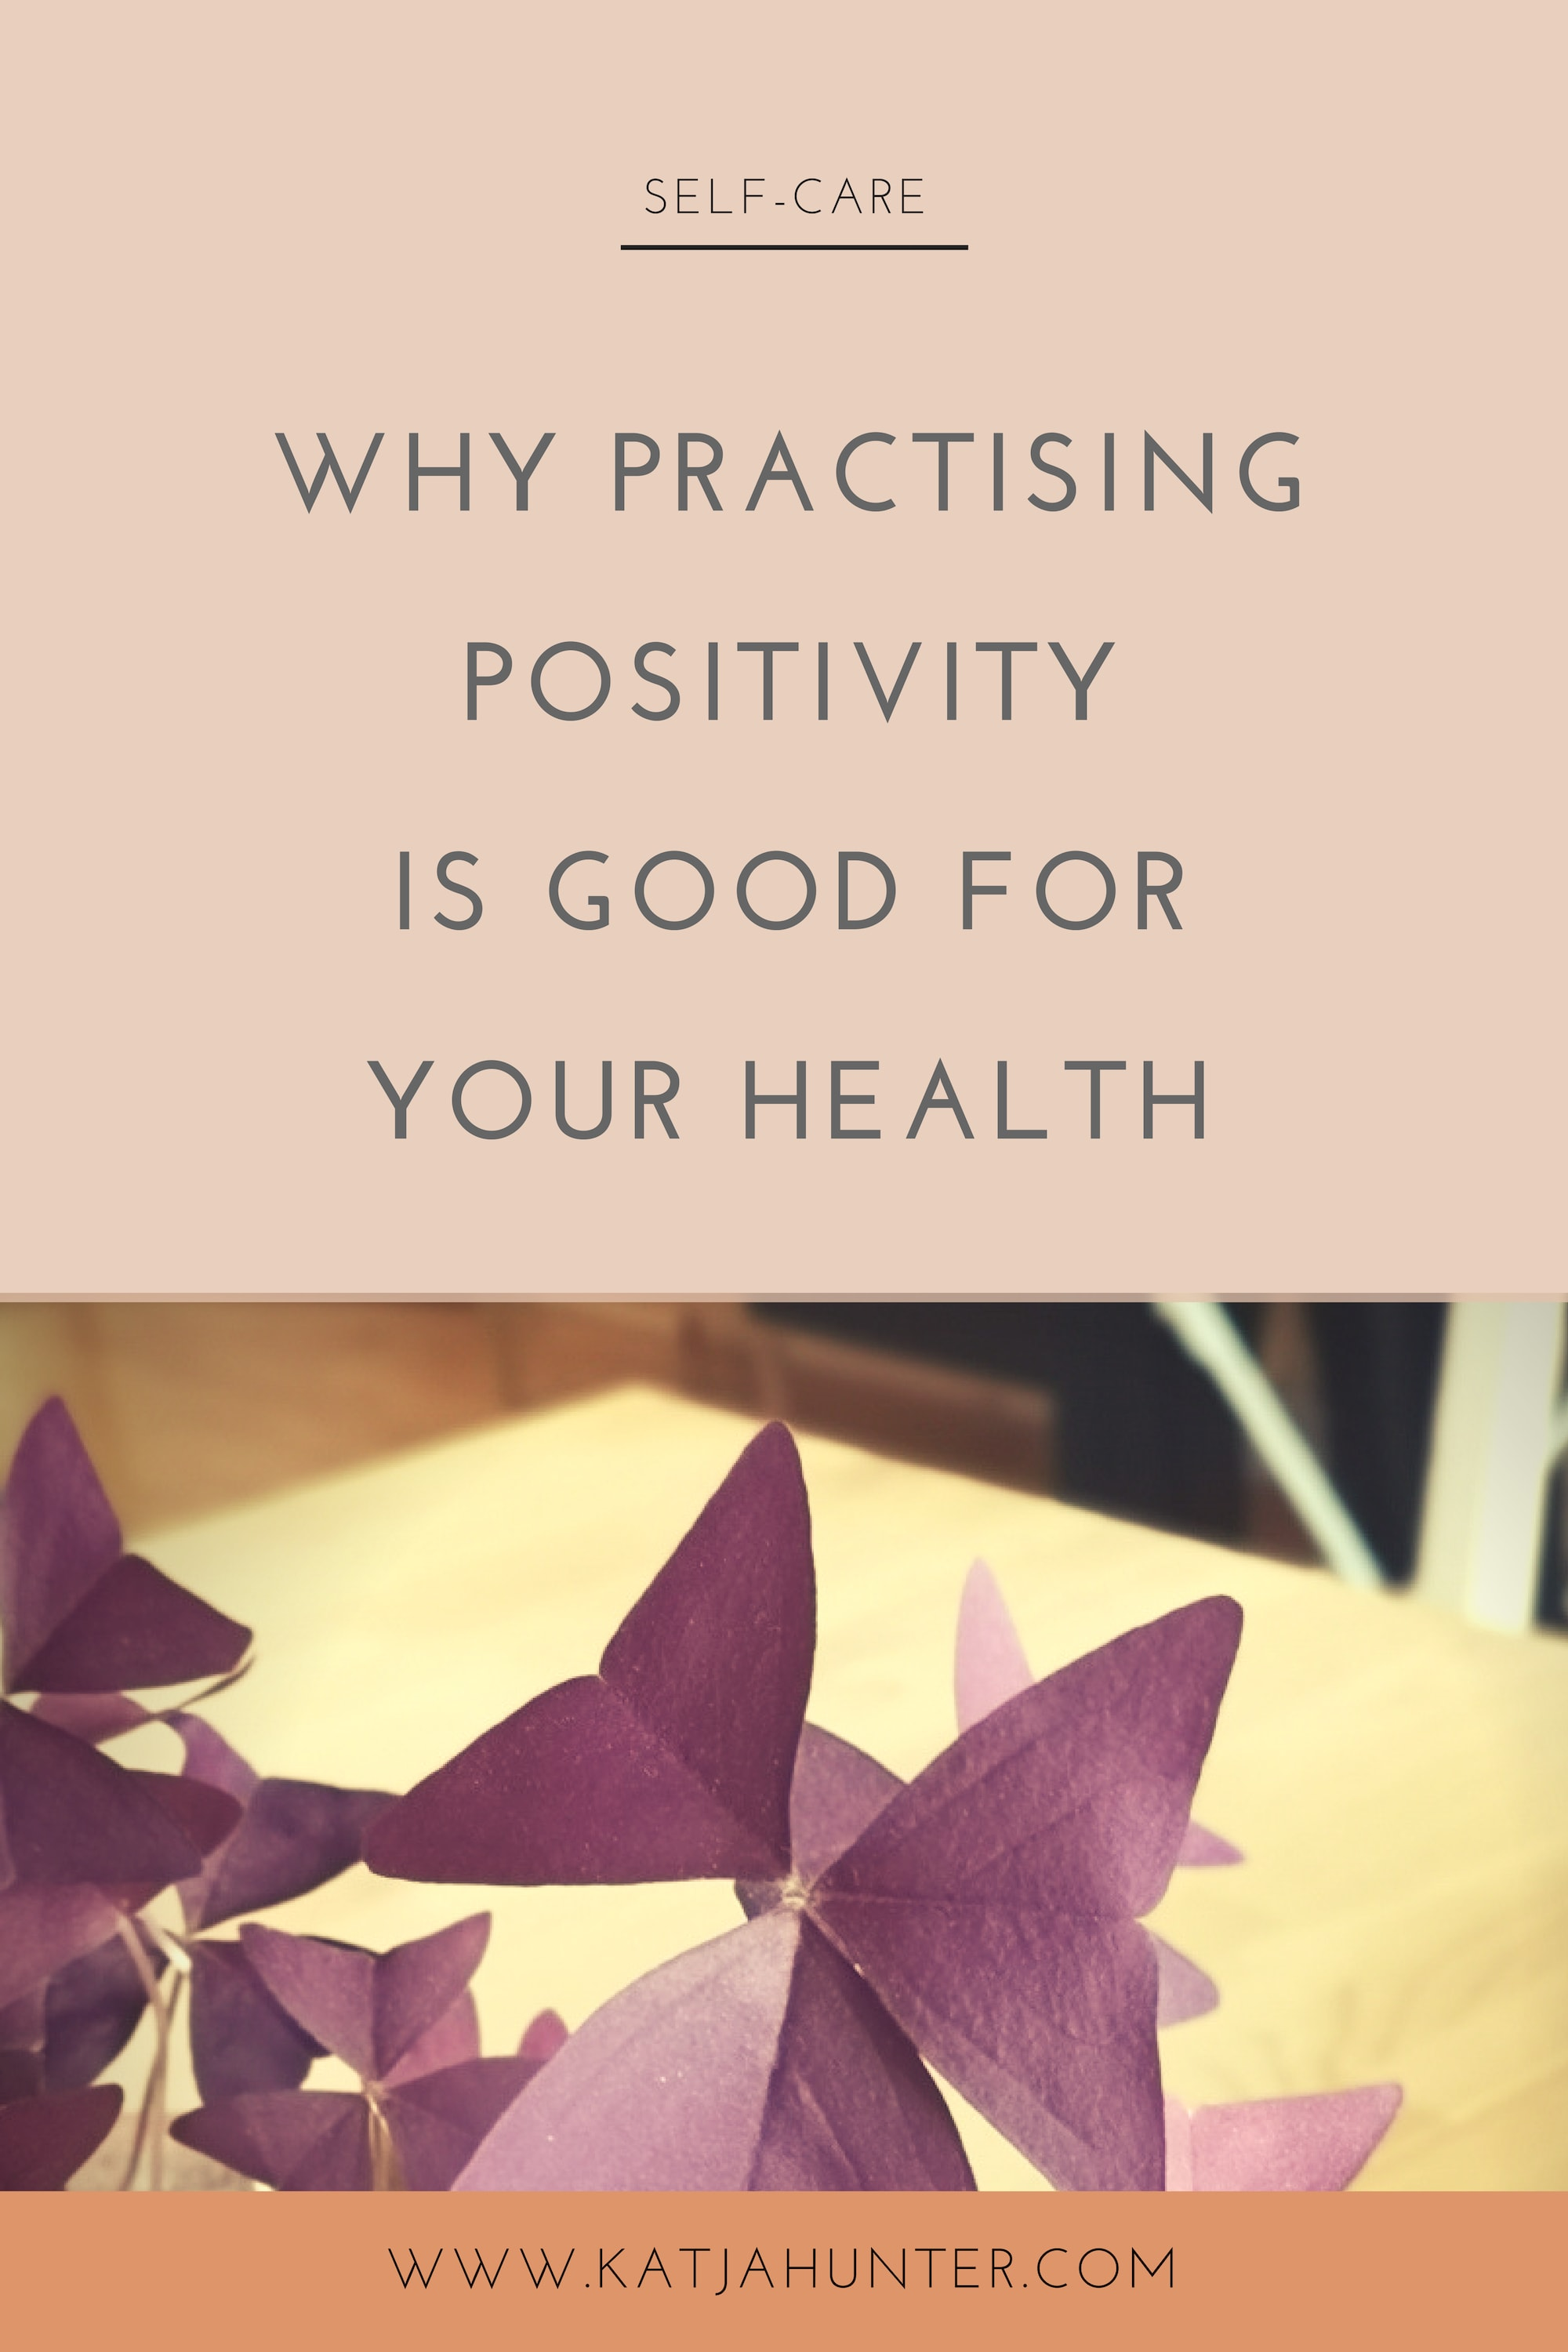 Why practising positivity is good for your health